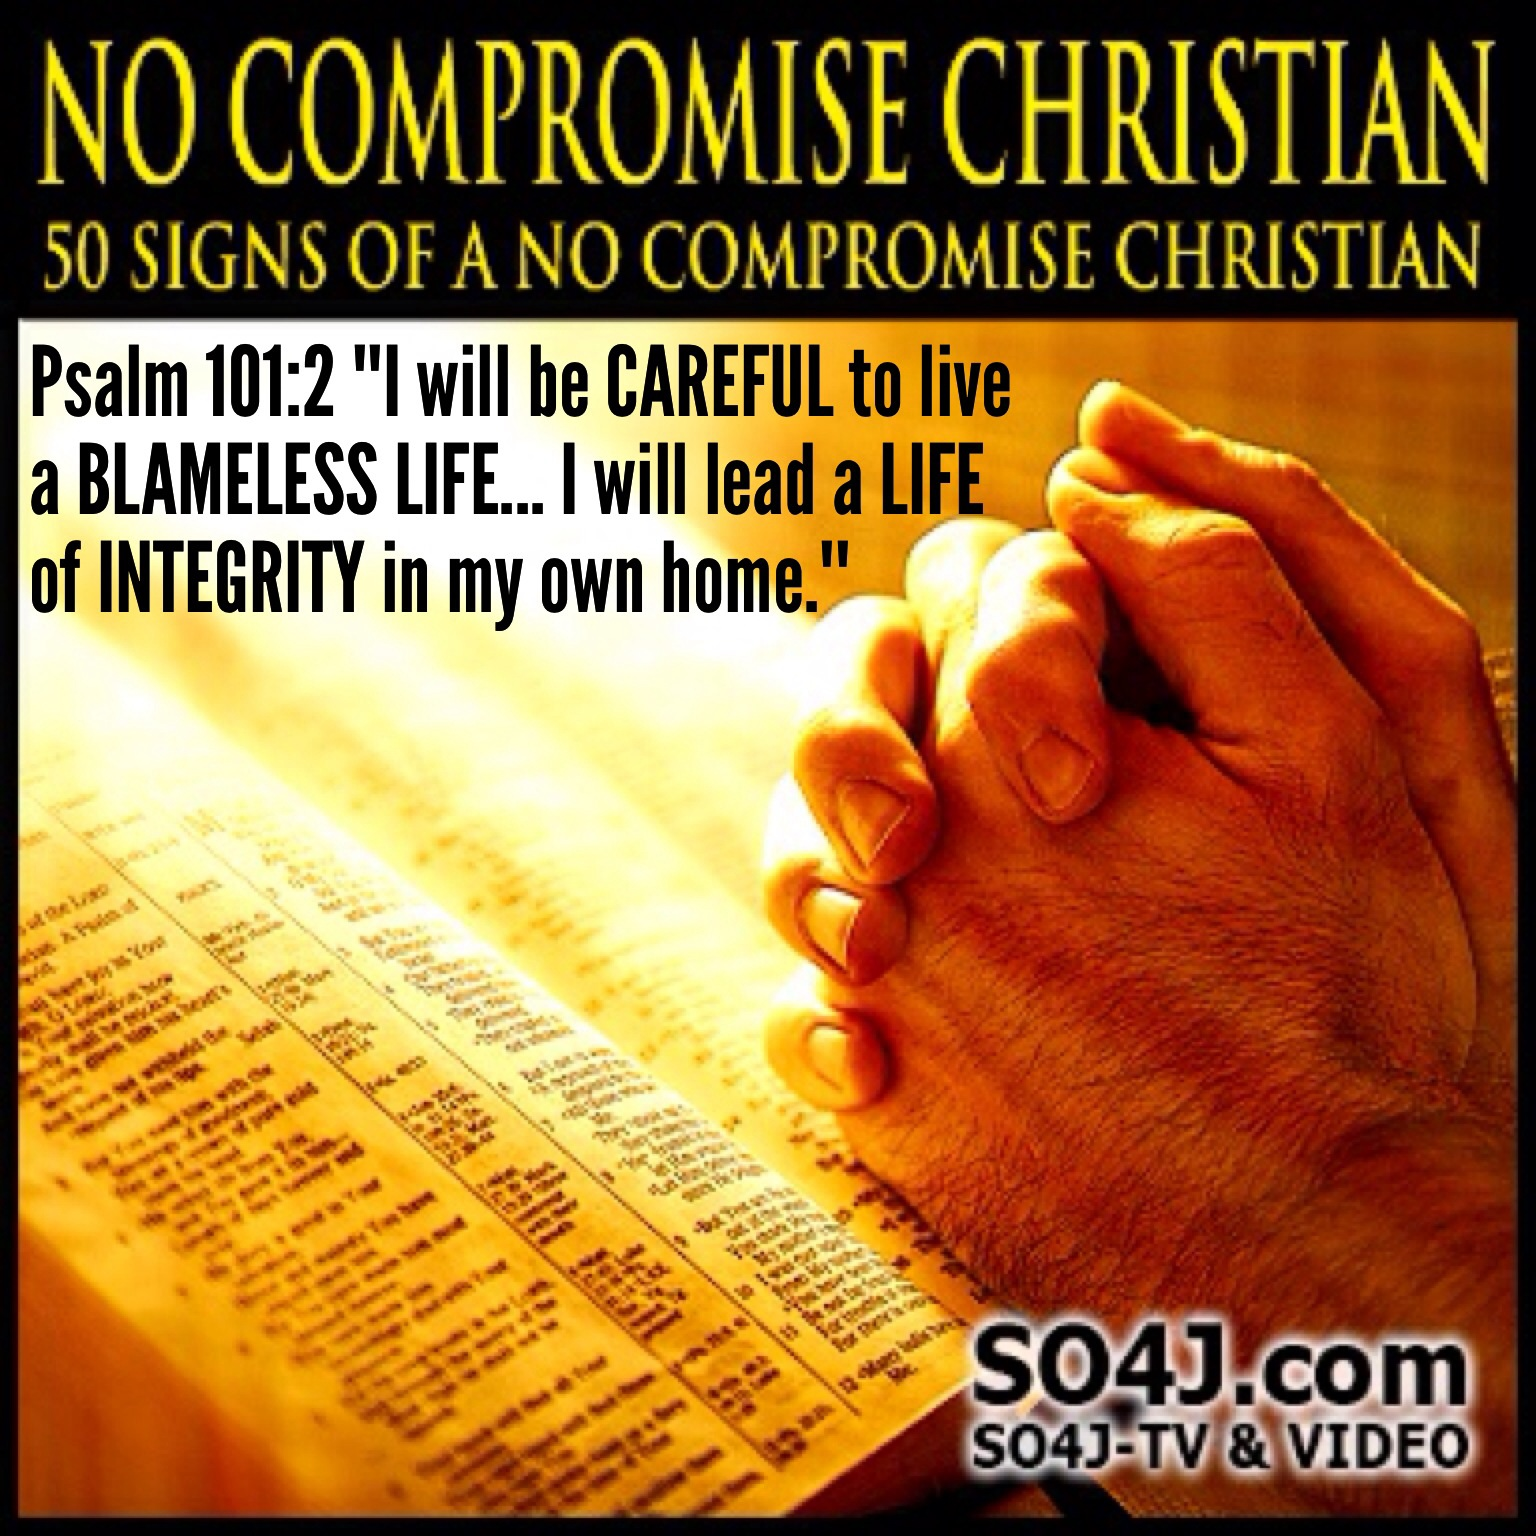 50 Signs of a No Compromise Christian - SO4J-TV - SO4J.com